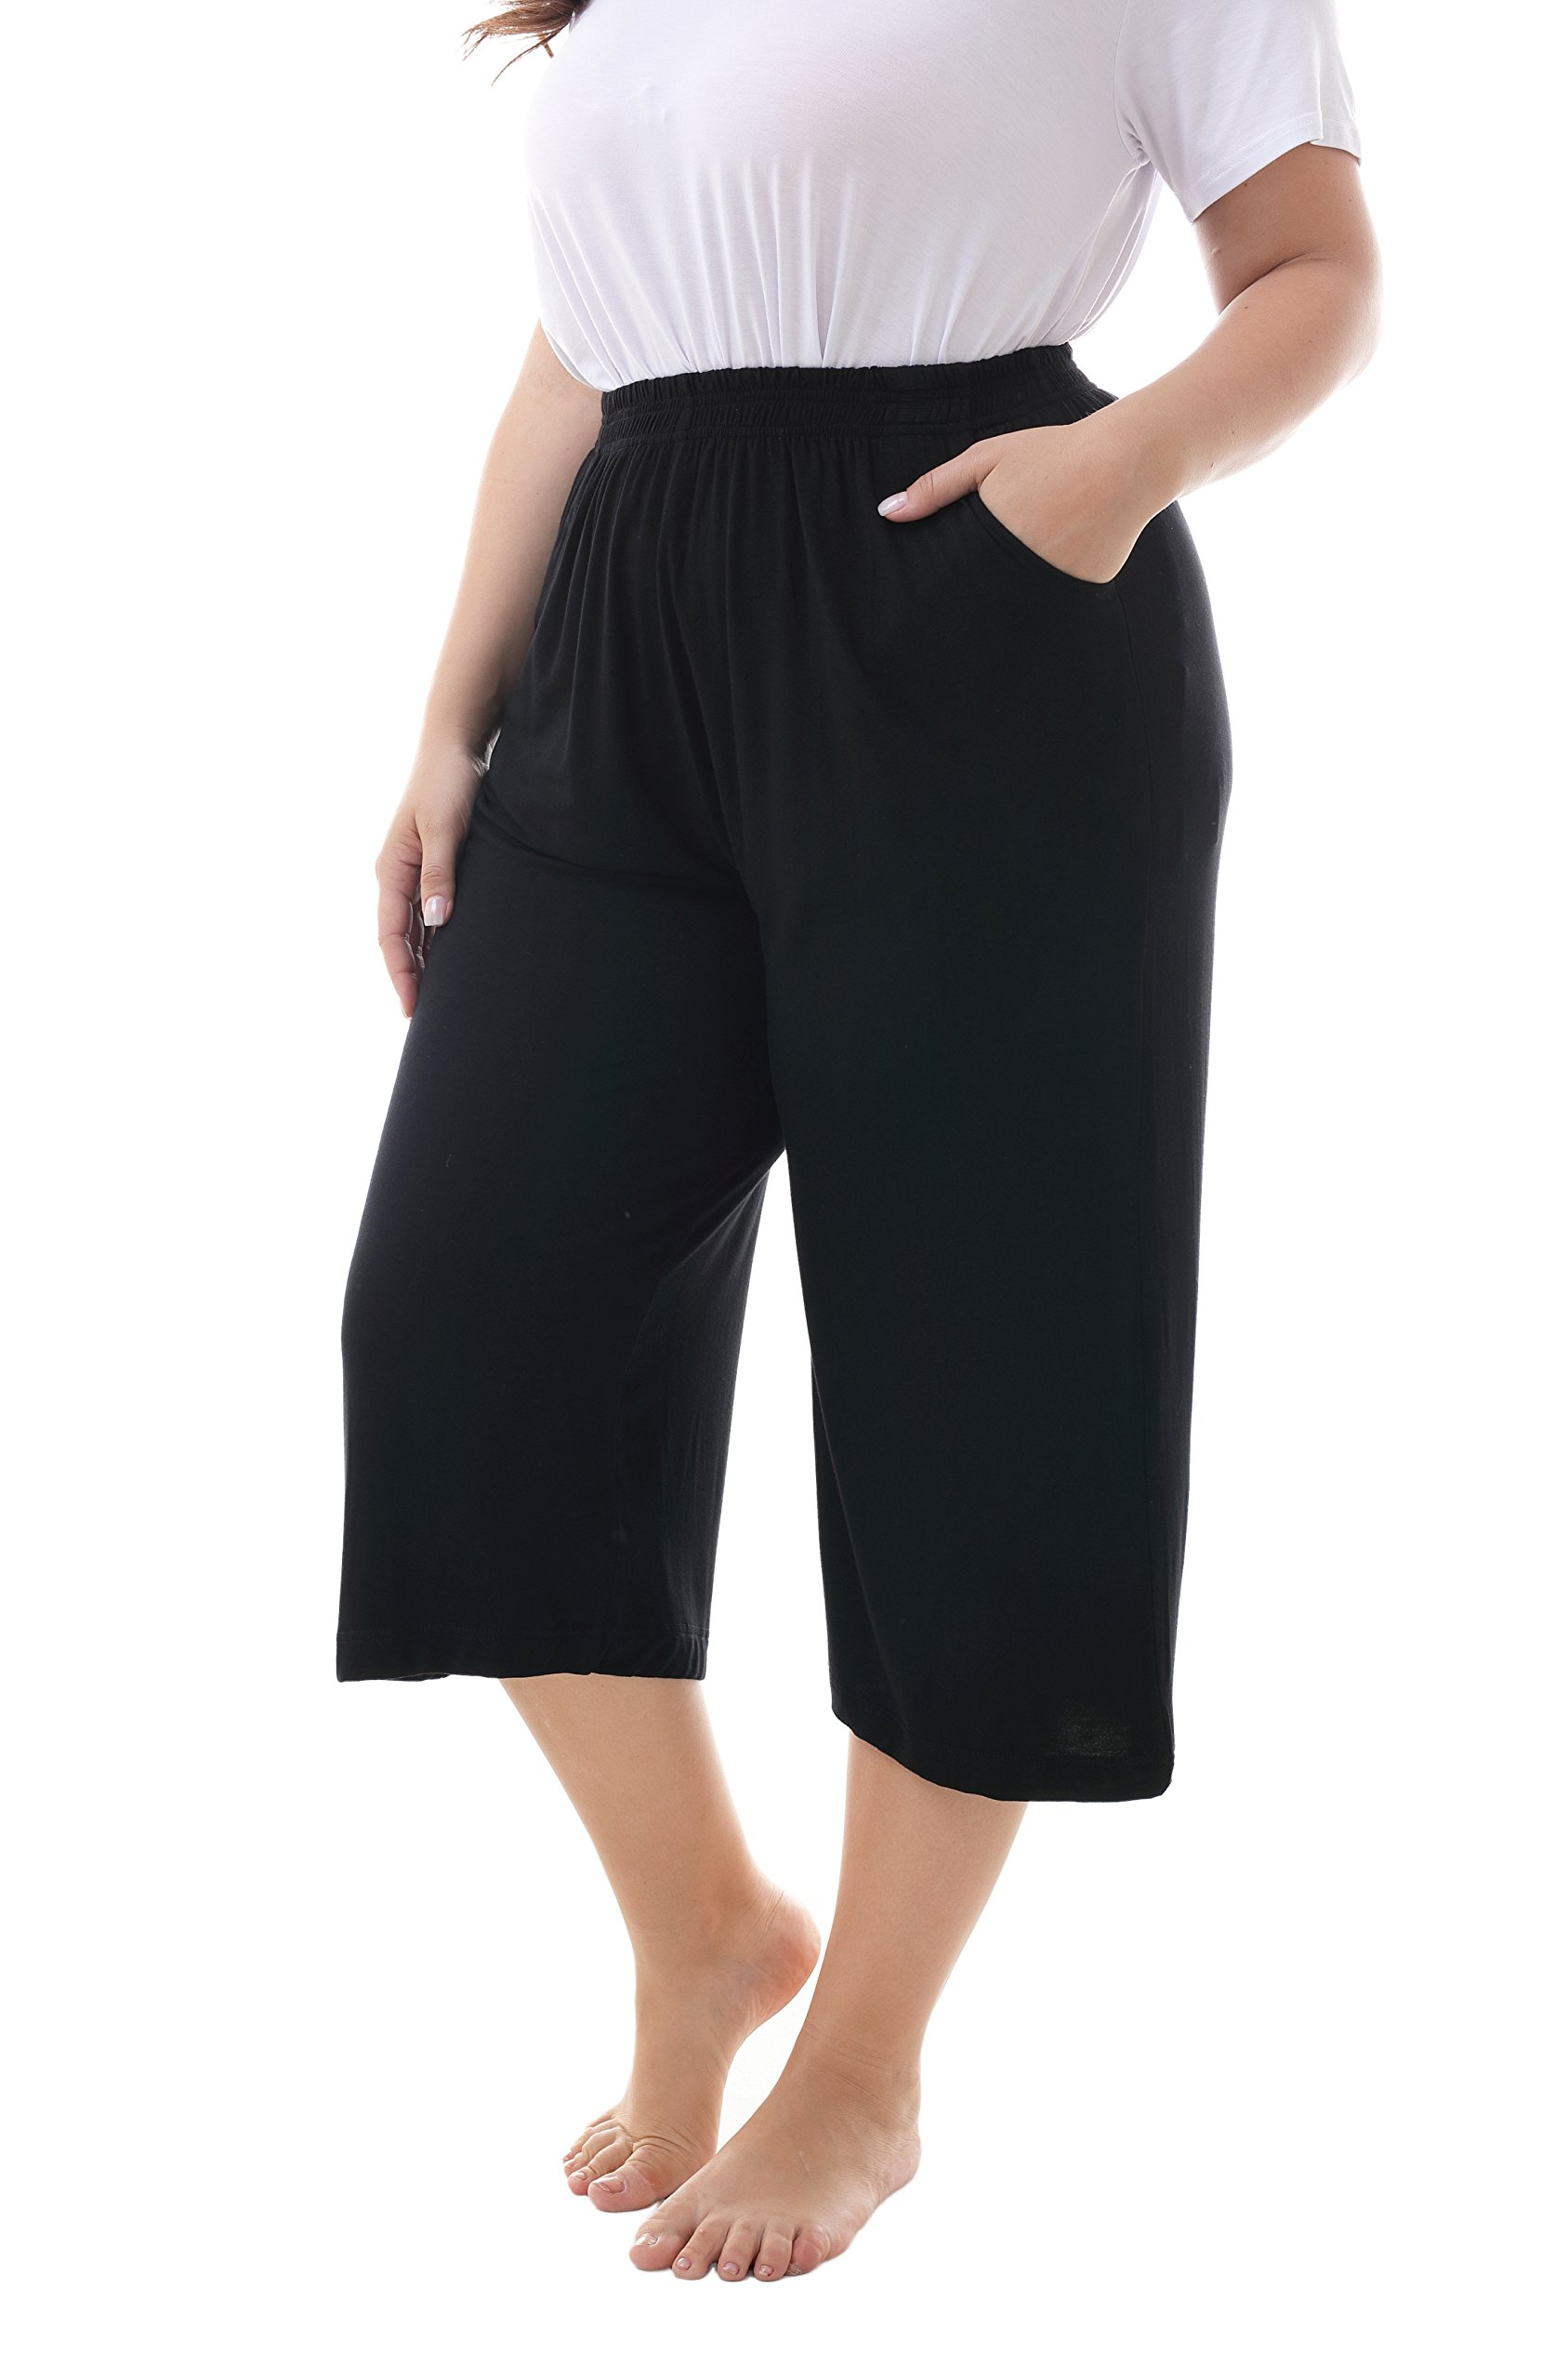 ZERDOCEAN Women's Plus Size Modal Stretchy Relaxed Lounge Capris with Pockets Black 1X